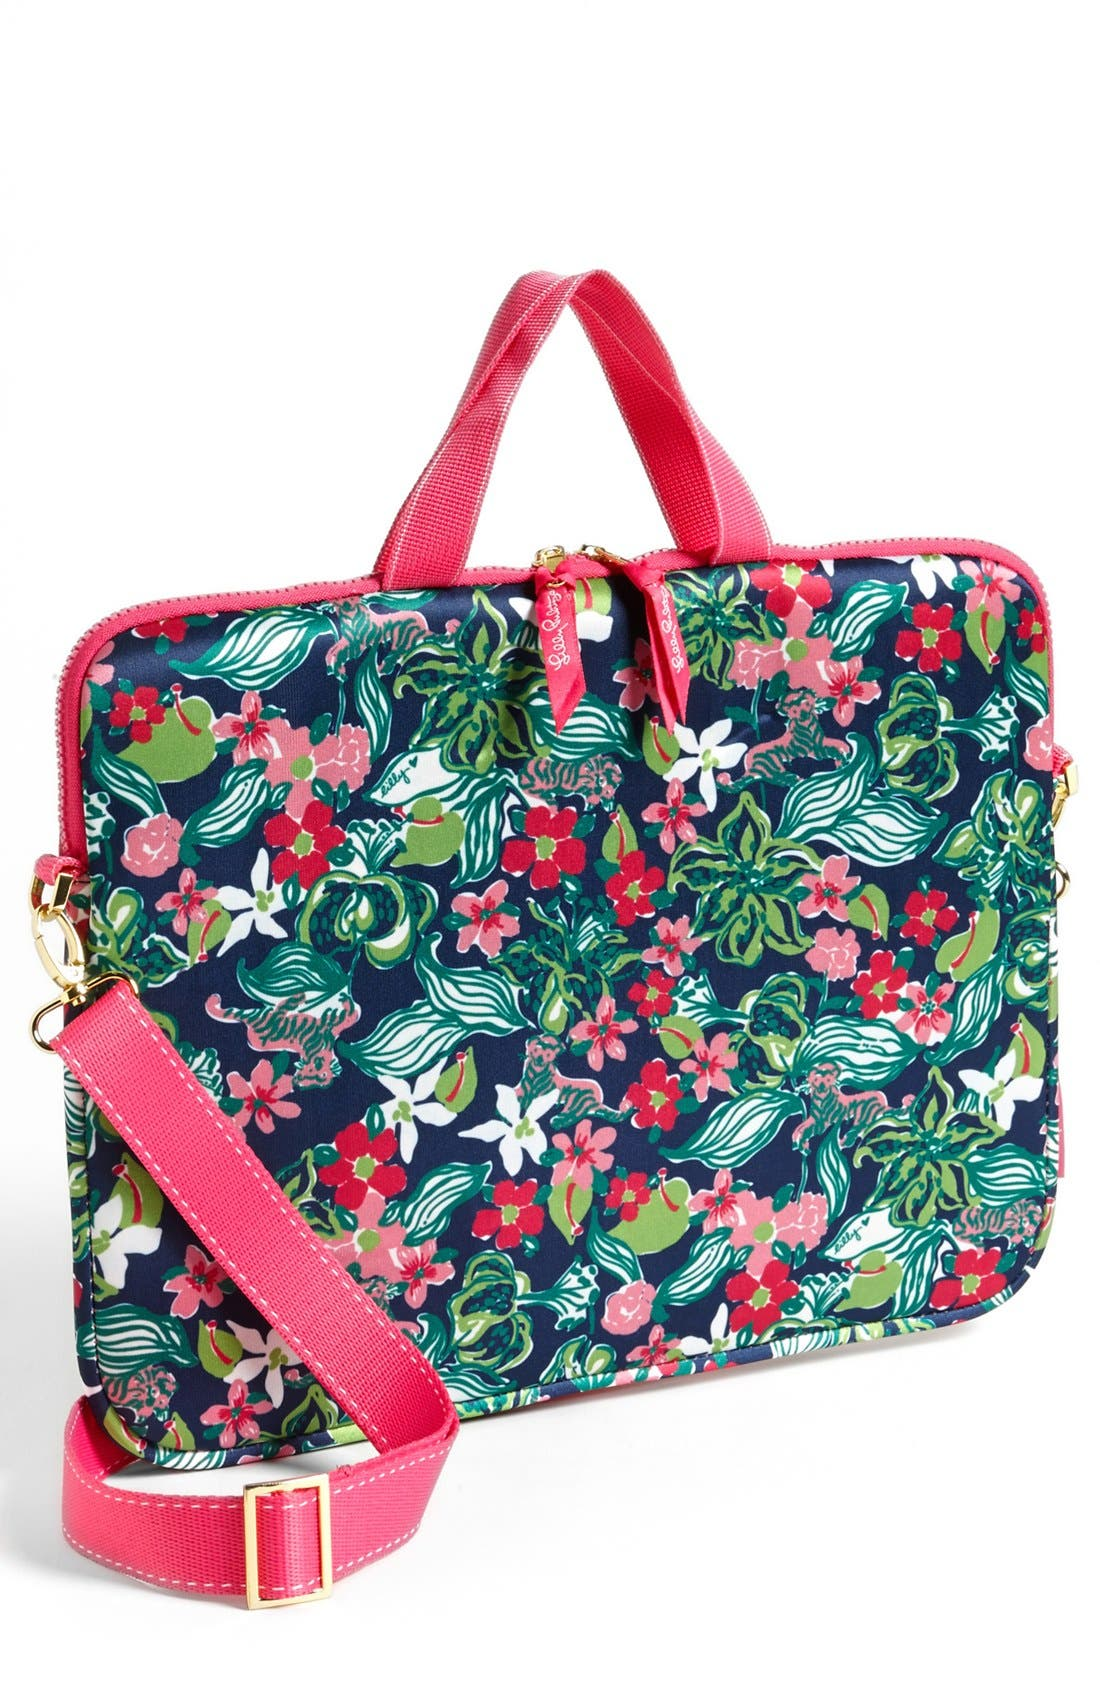 Alternate Image 1 Selected - Lilly Pulitzer® 'Tiger Lilly' Laptop Tote